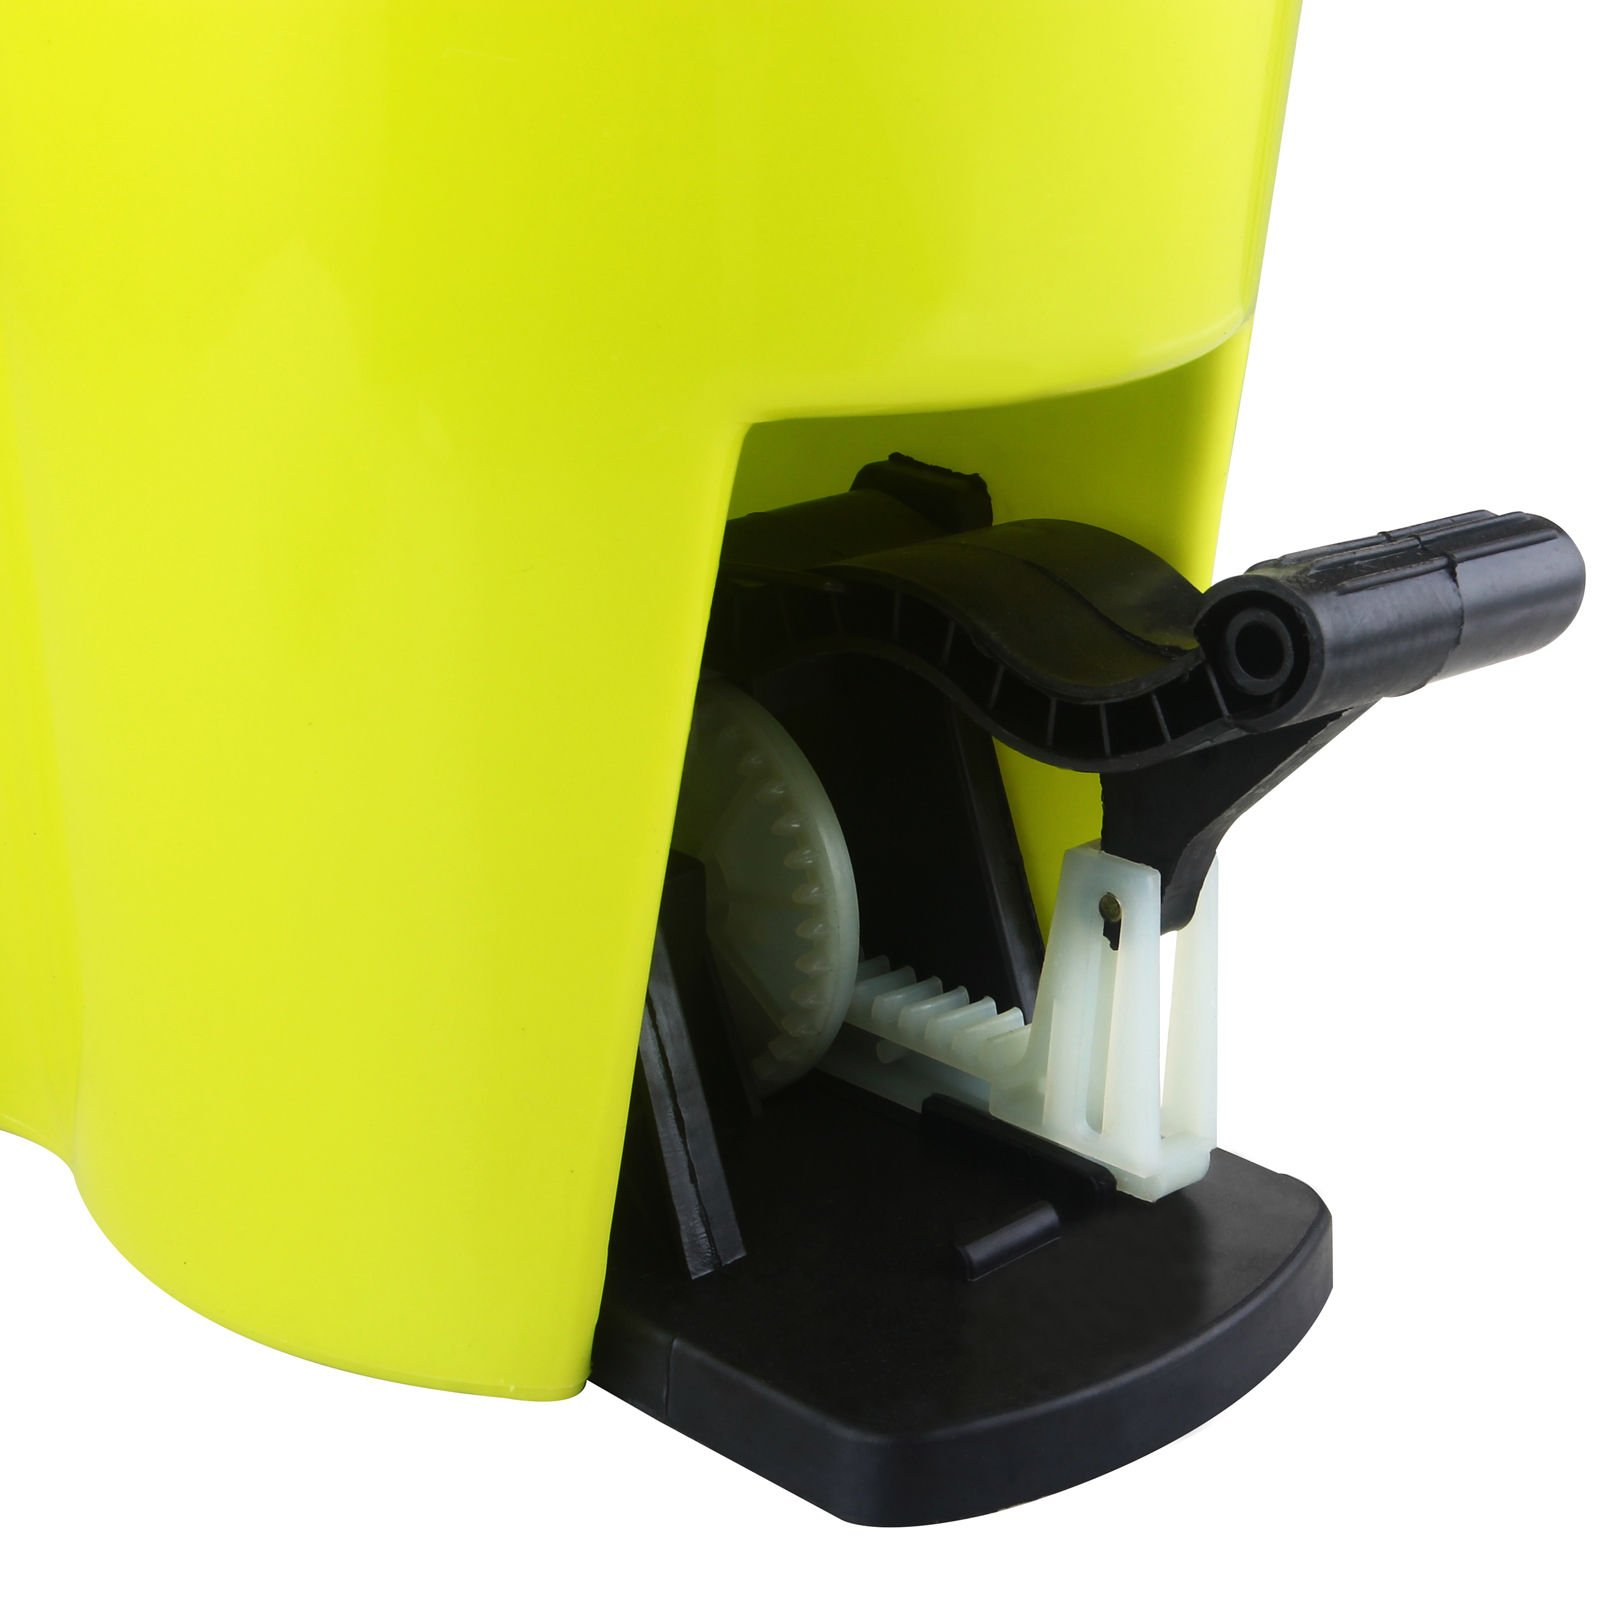 Eight24hours Magic Spin Easy Floor Mop Bucket 2 Head Green 360° Rotating + FREE E-Book by Eight24hours (Image #3)